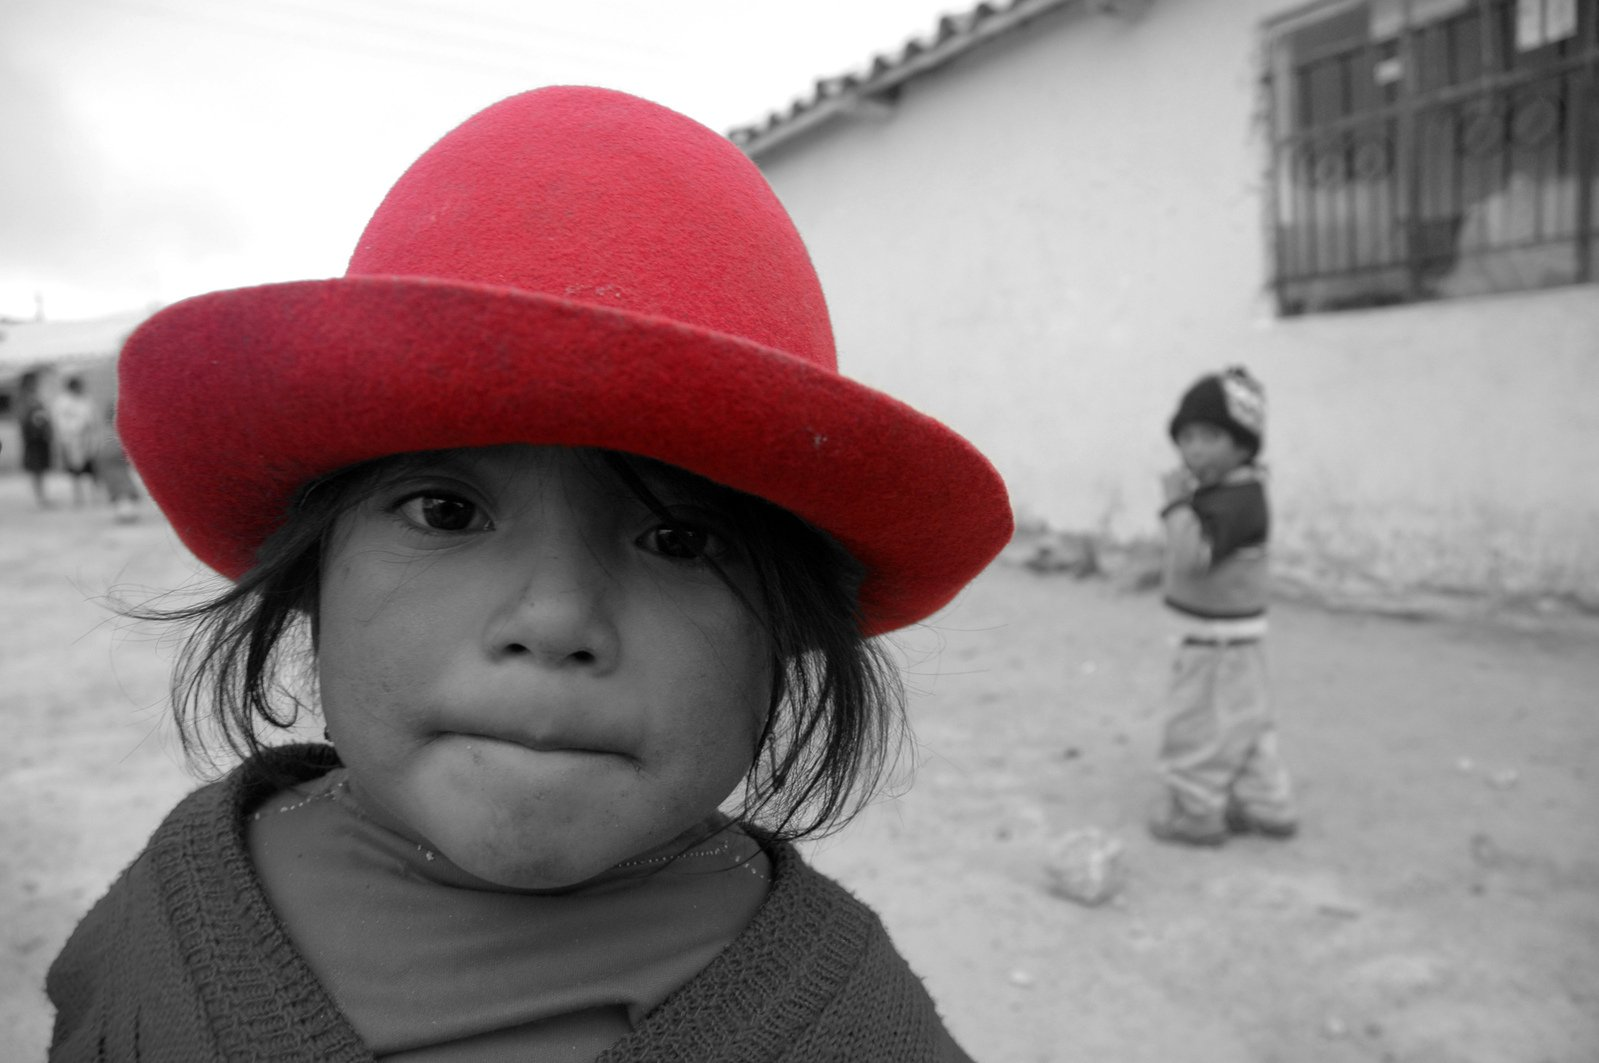 Red hat on a girl